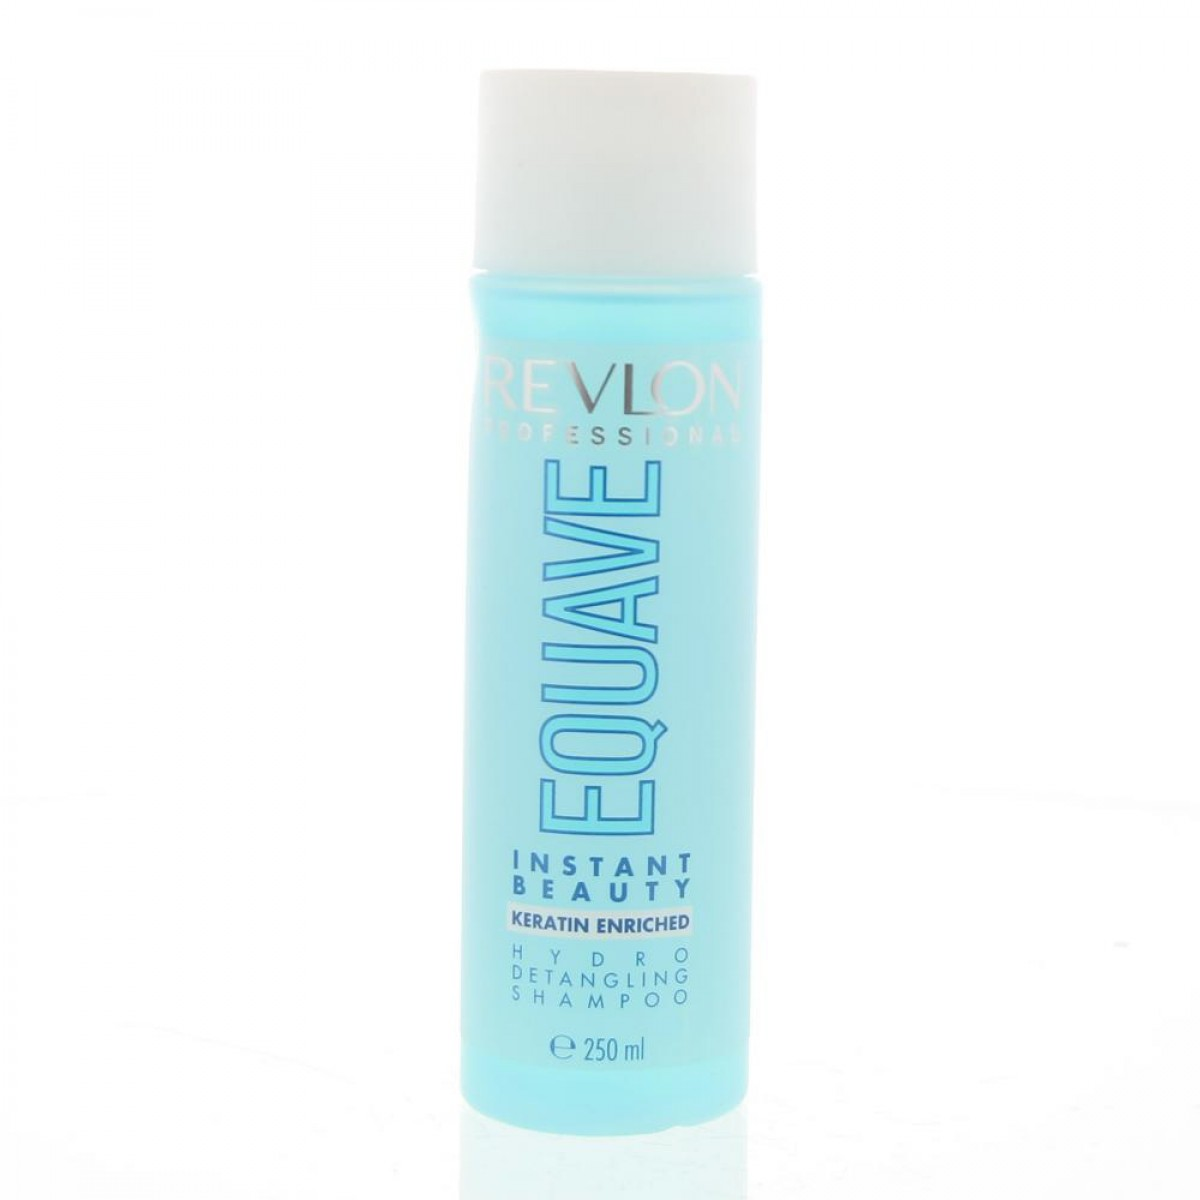 REVLON EQUAVE INSTANT BEAUTY HYDRO SHAMPOO 250 ML